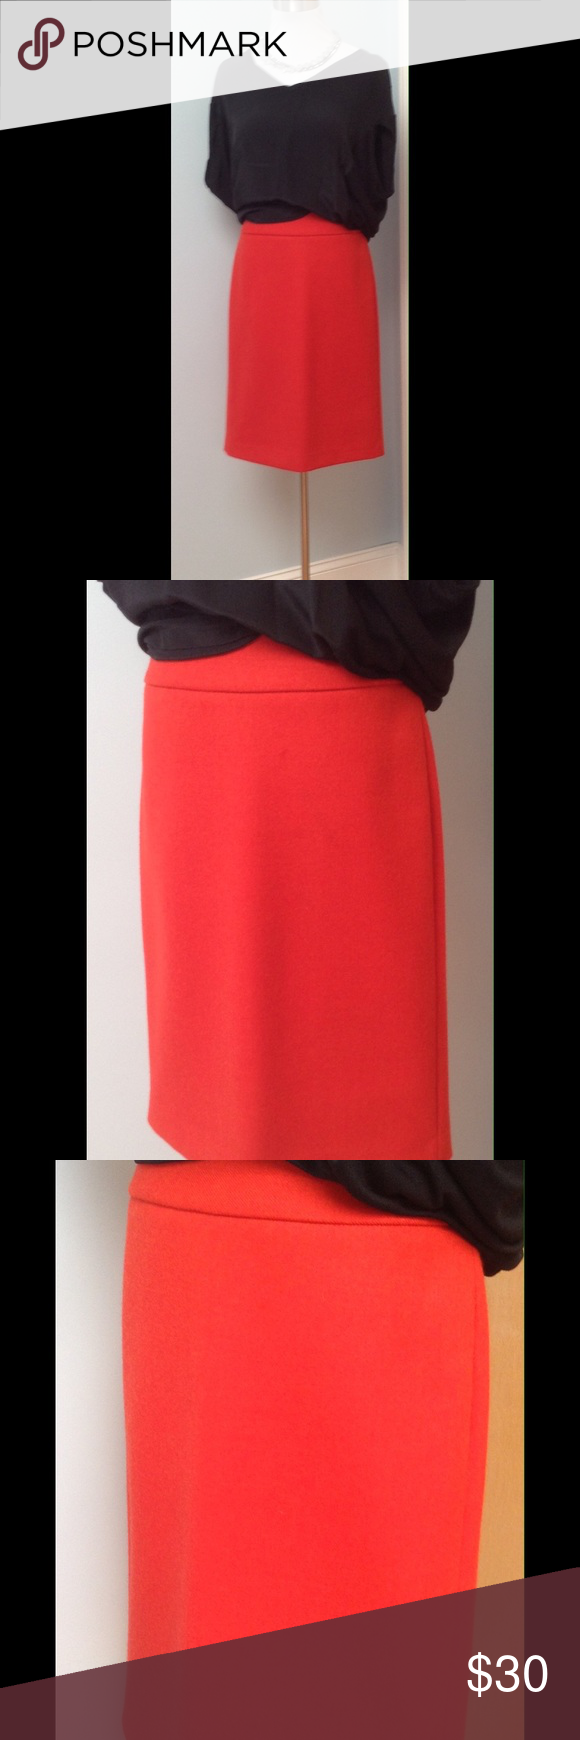 J. crew classic wool pencil tomato red sz 2 Clothes